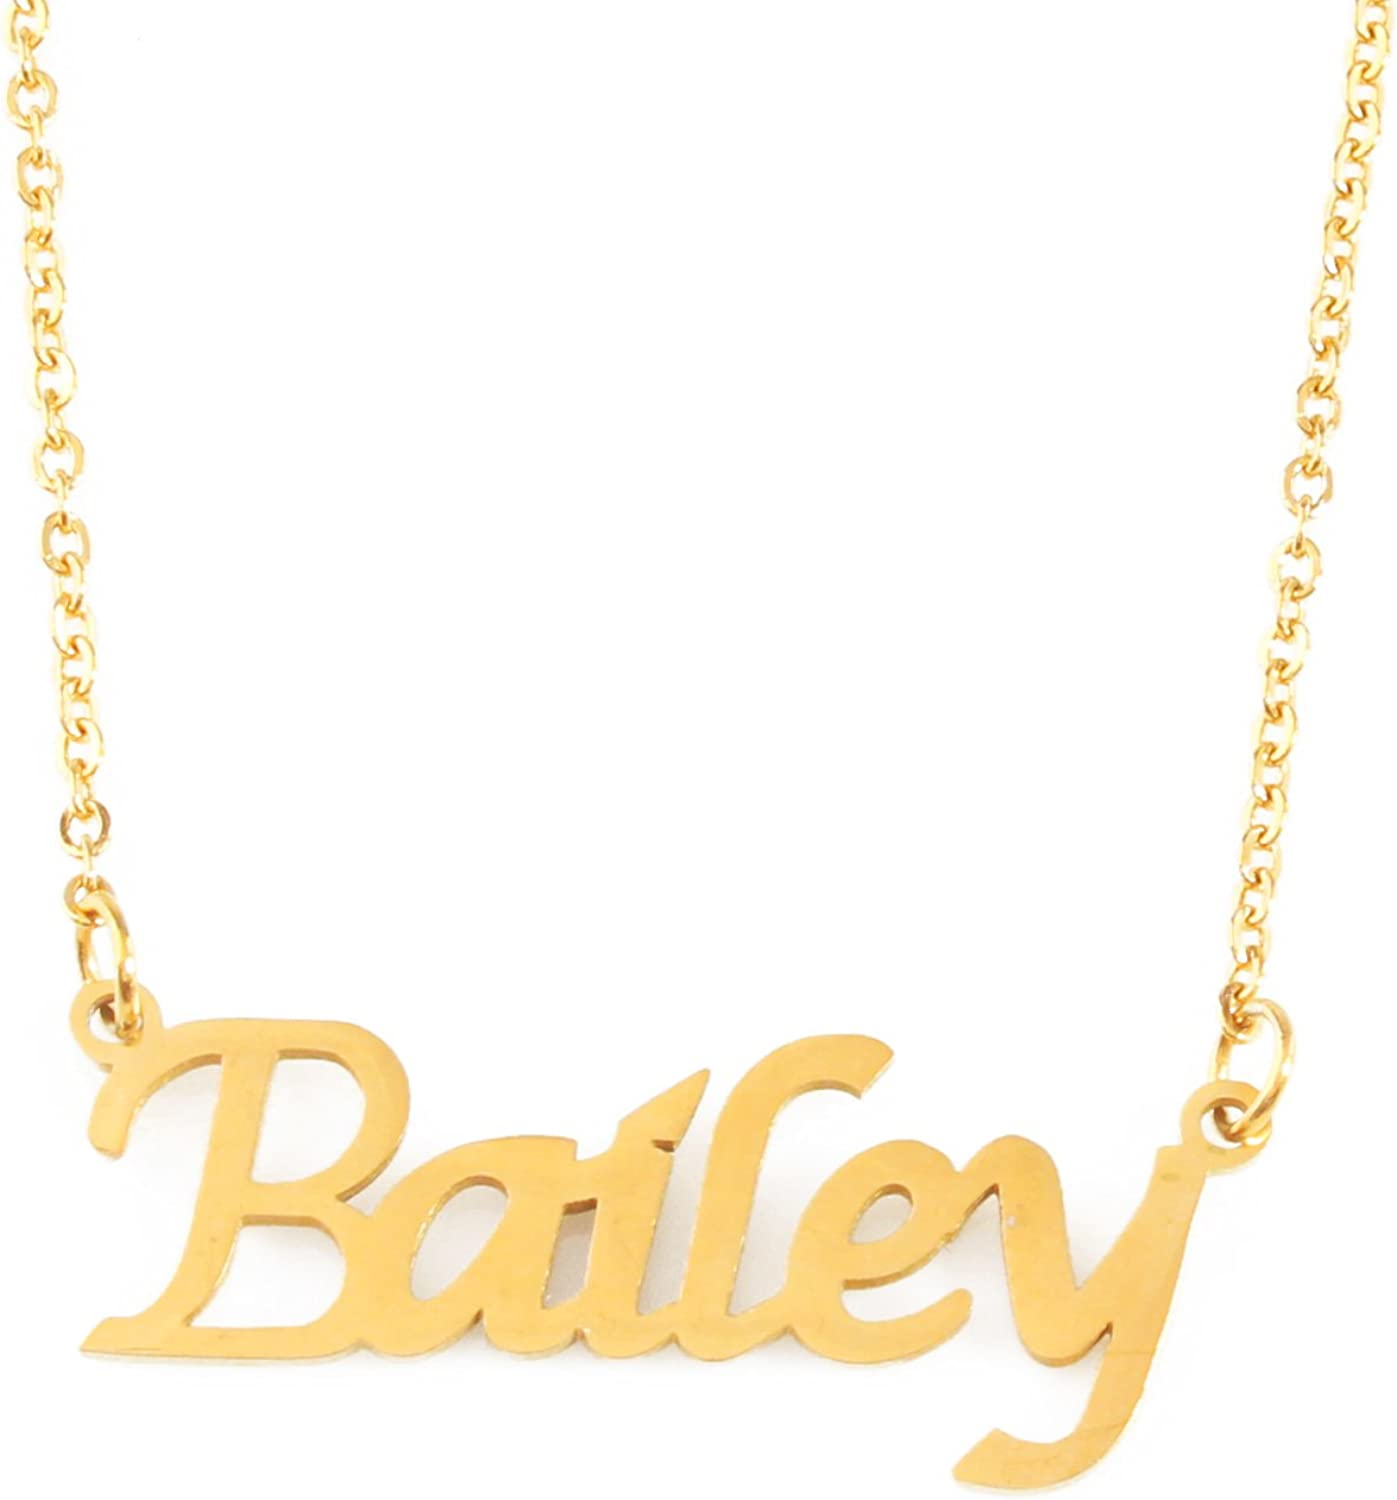 Zacria Riley Name Necklace 18ct Rose Gold Plated